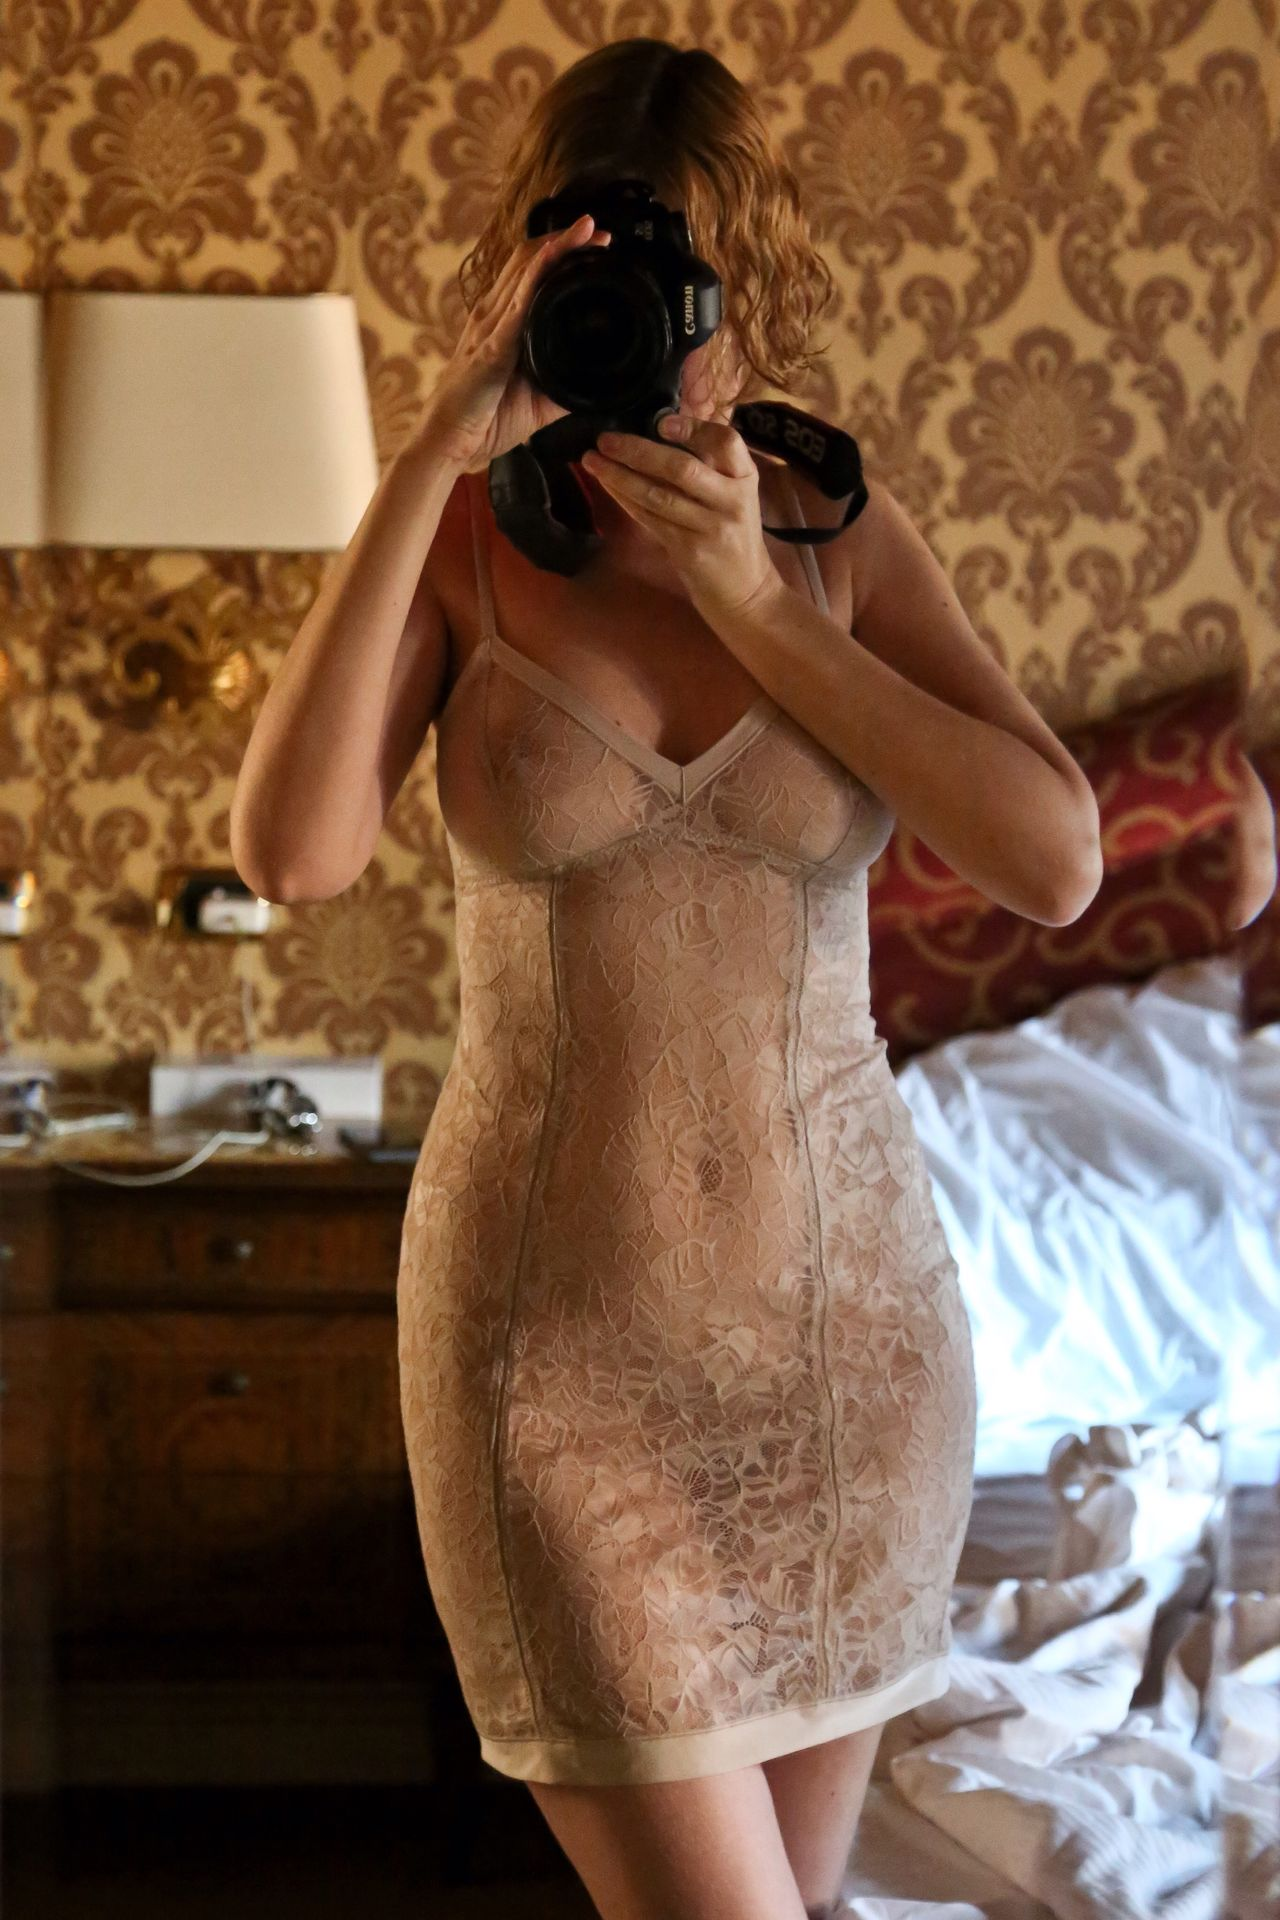 Selective Focus Self Portrait Selfportrait ThatsMe Woman Reflection Mirror Canon Canonphotography Taking Photos Taking Pictures Lingerie Femininity Standing Curves Softness The Amazing Human Body Selfie ✌ Close-up Shadows & Lights Woman Portrait Hotel Venice Italy Travel